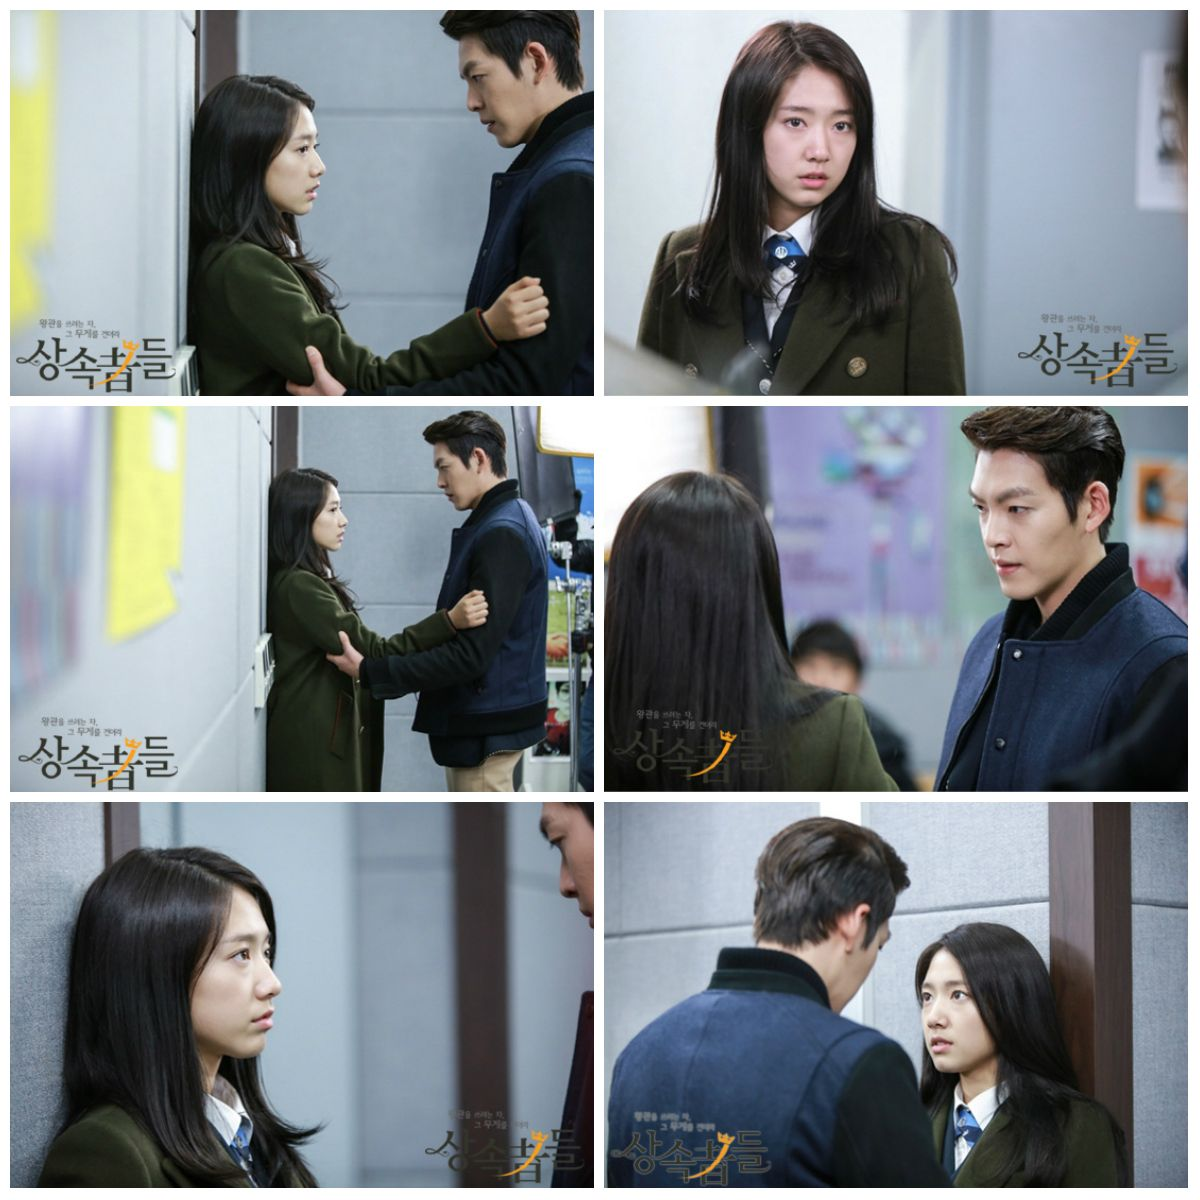 Park Shin Hye Is Caught Between Lee Min Ho And Kim Woo Bin In The Heirs Ep 13 Preview Stills Soompi Kim Woo Bin The Heirs Lee Min Ho